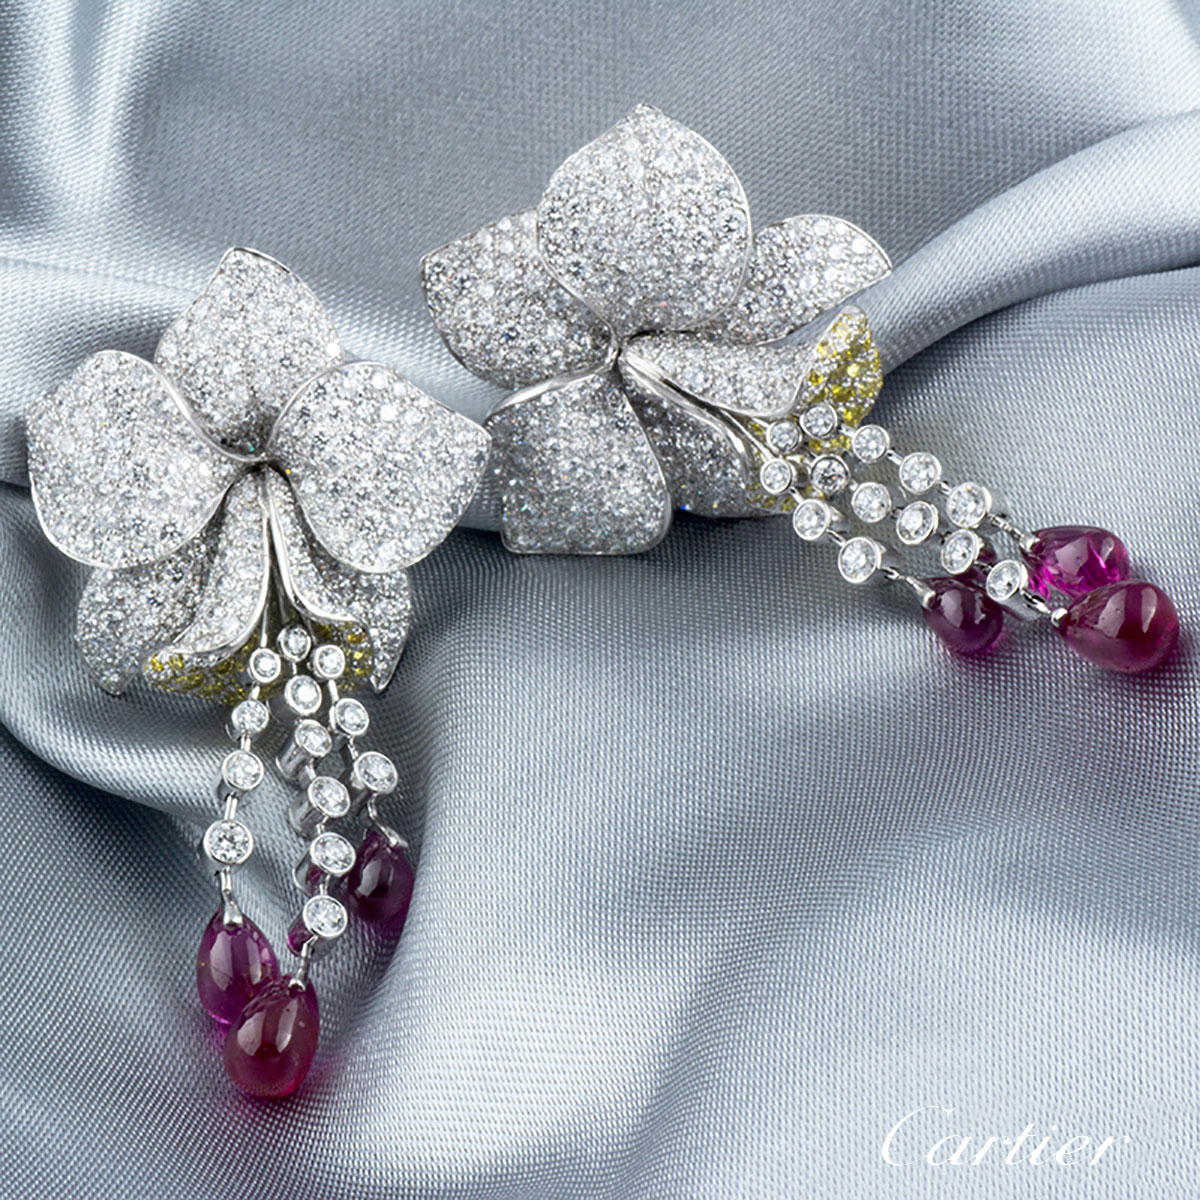 mark com diamond ring orchid pin by schneider inspirationsofcardiff